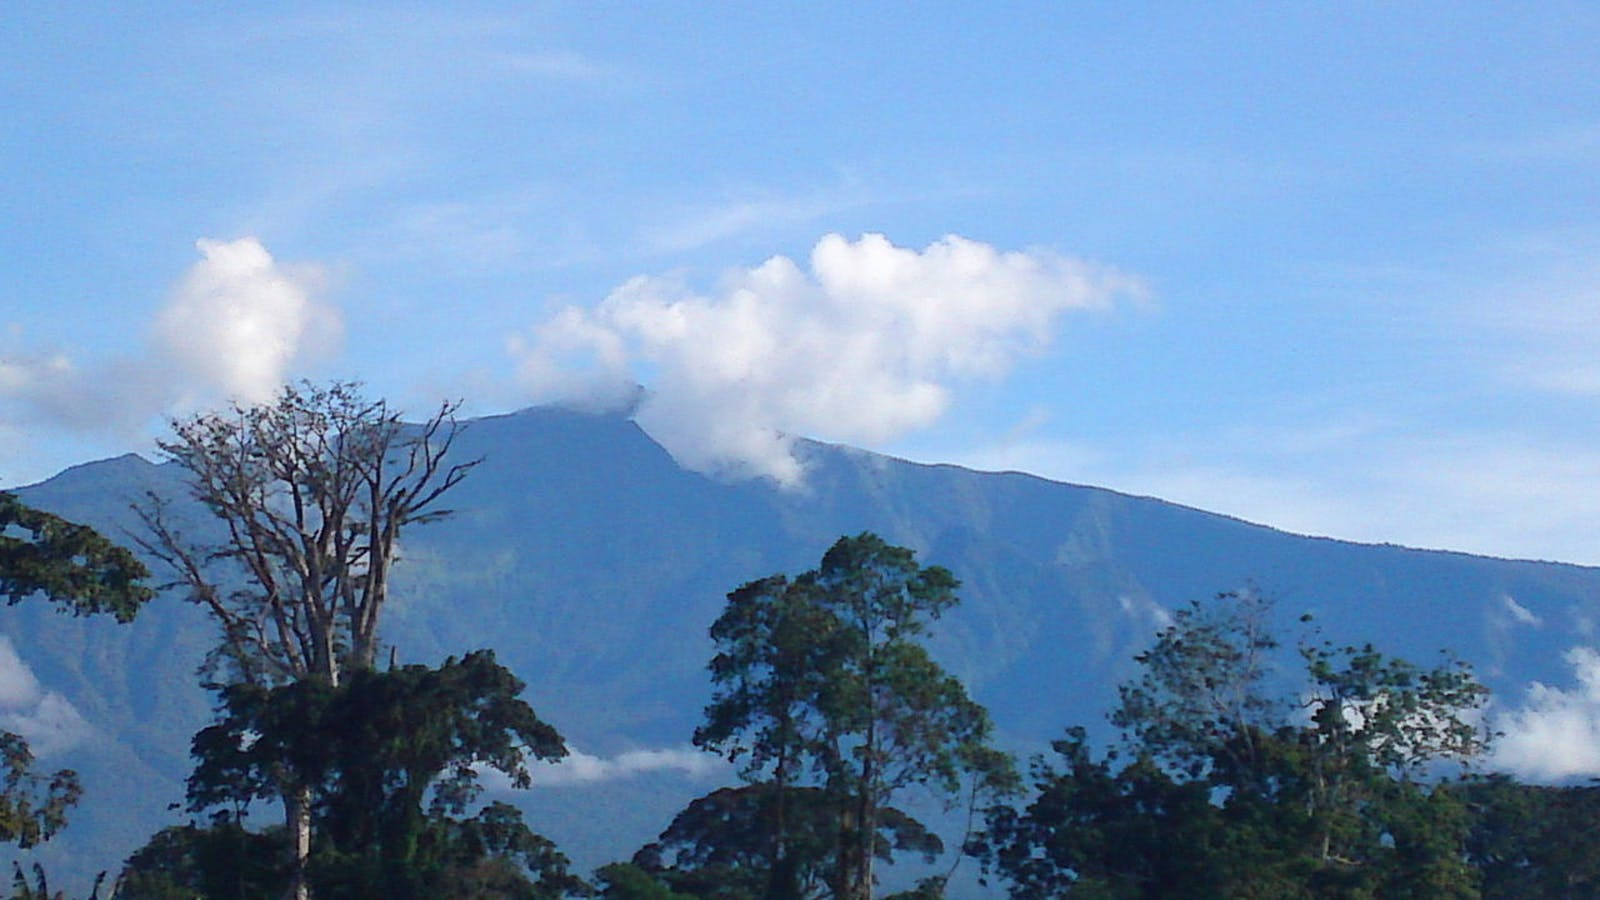 Mount Cameroon and Bioko Montane Forests